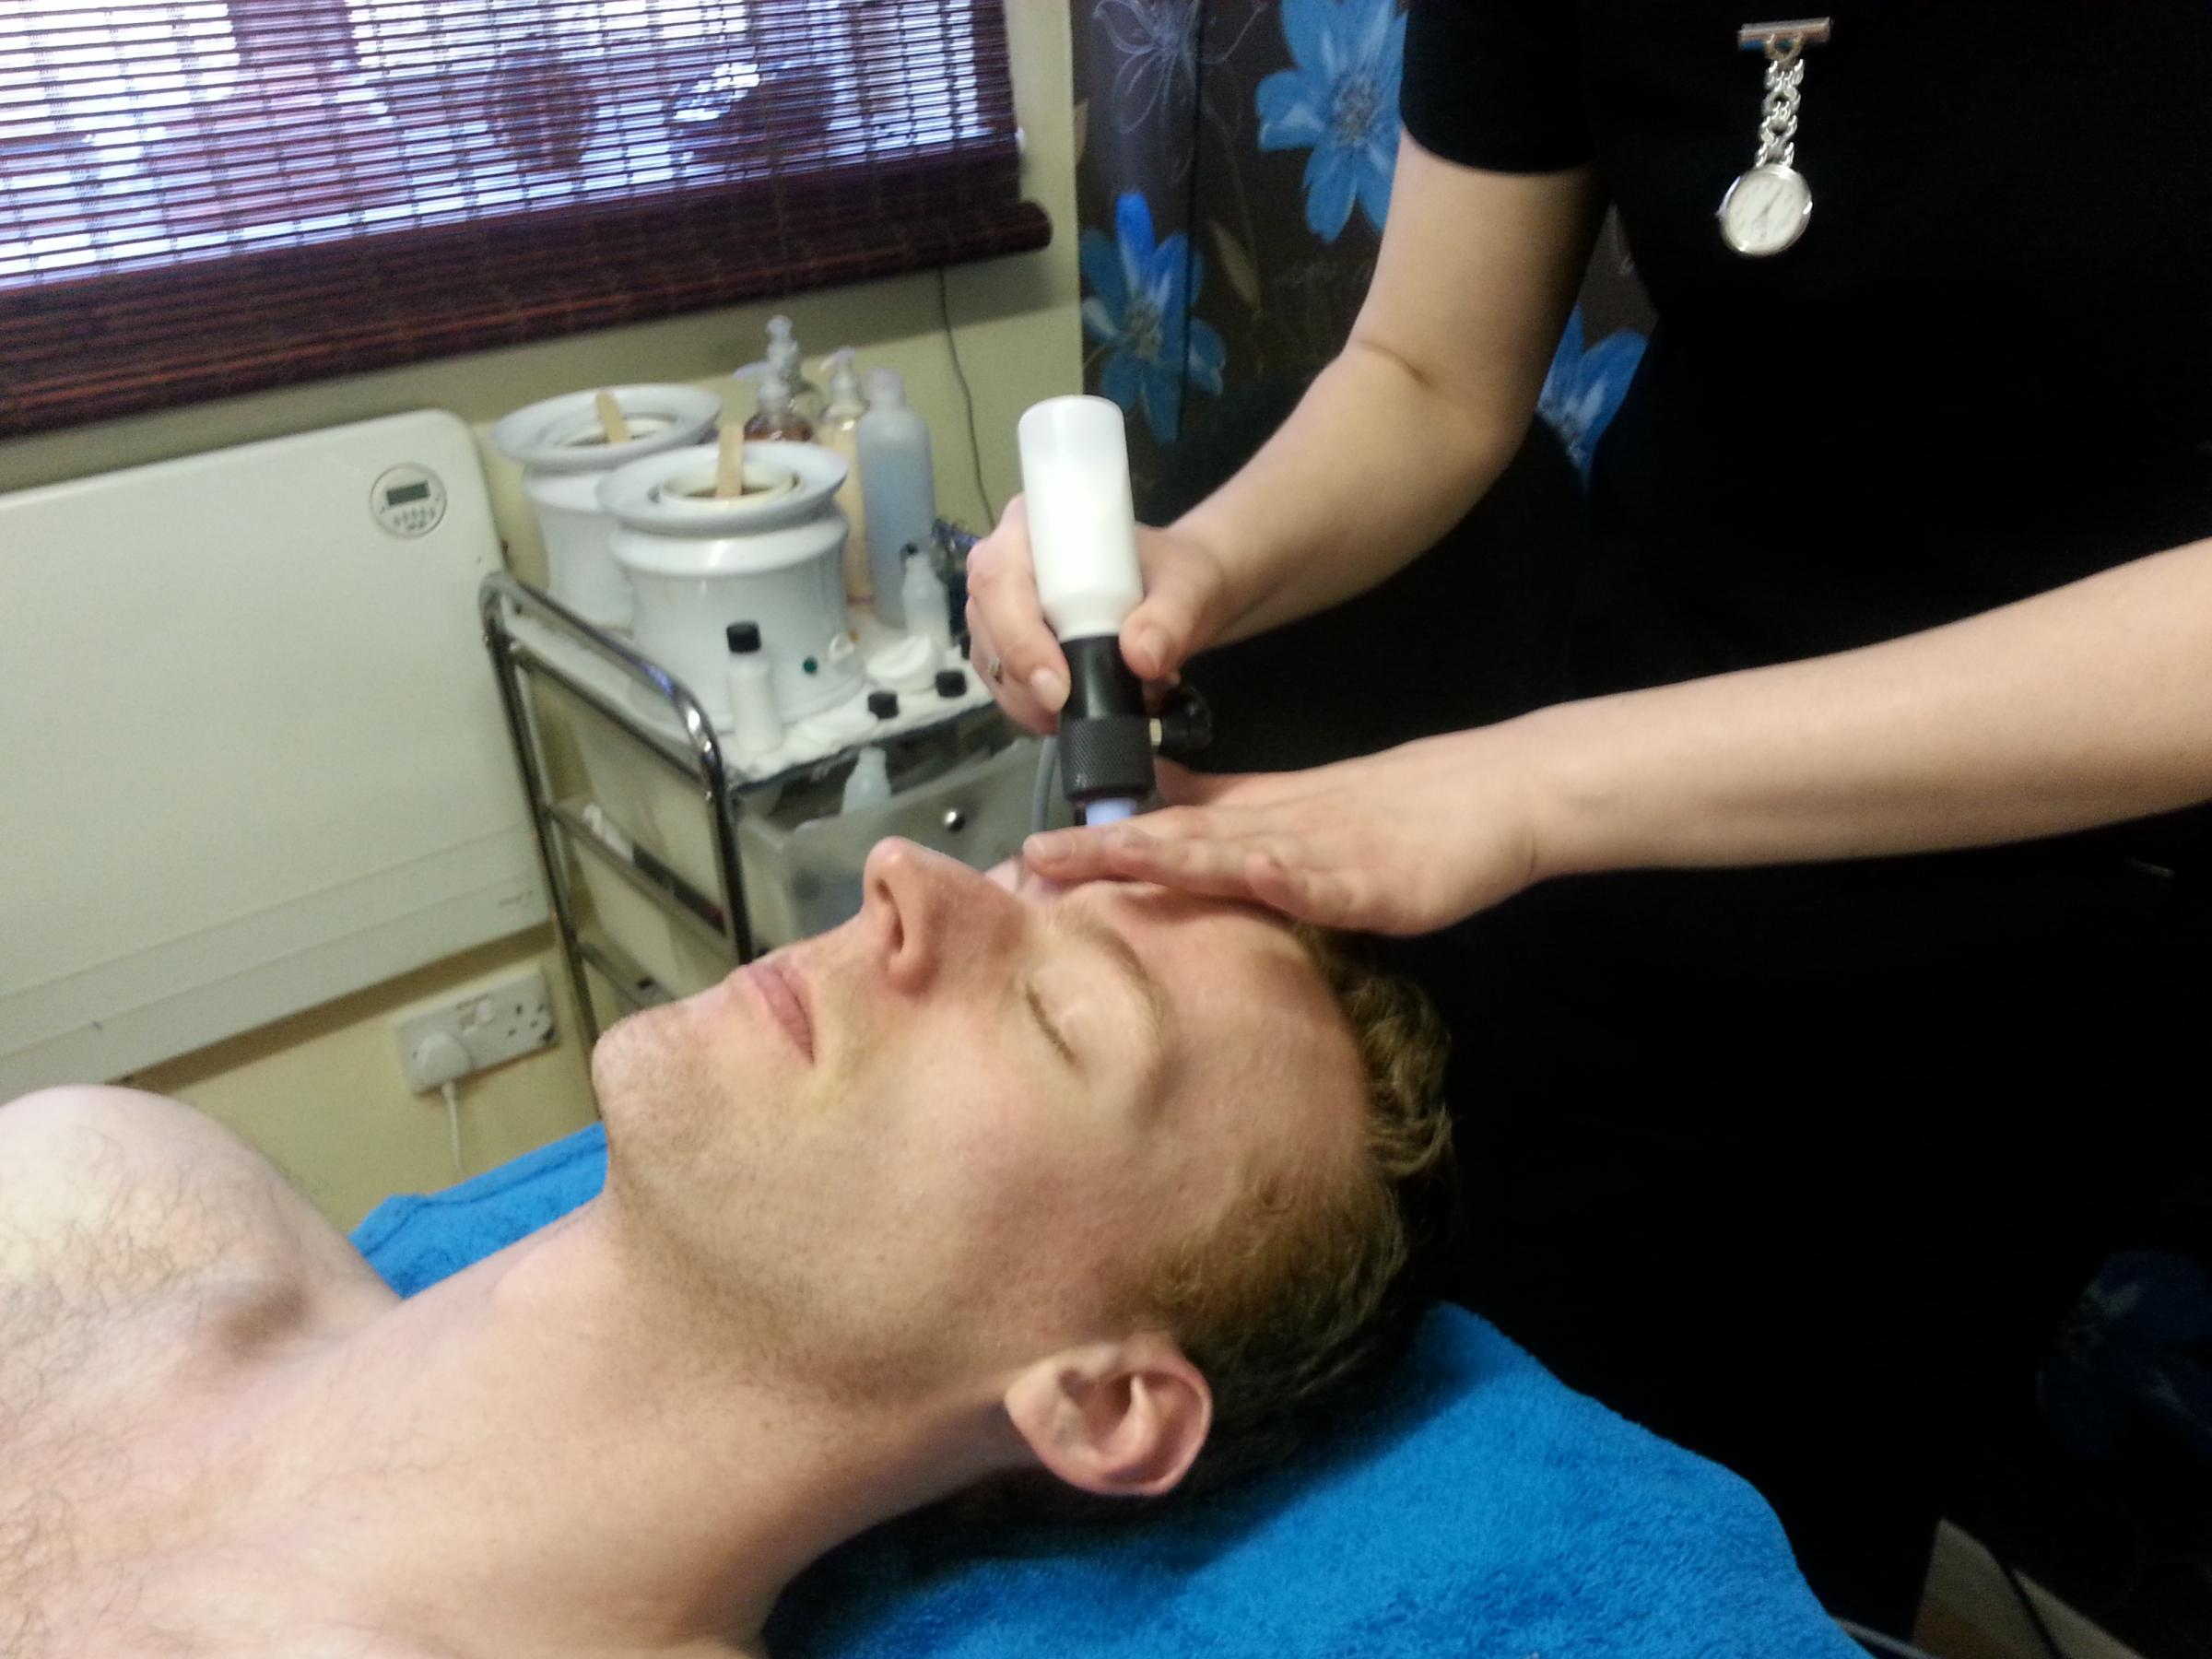 Tried and tested: the Microdermabrasion facial